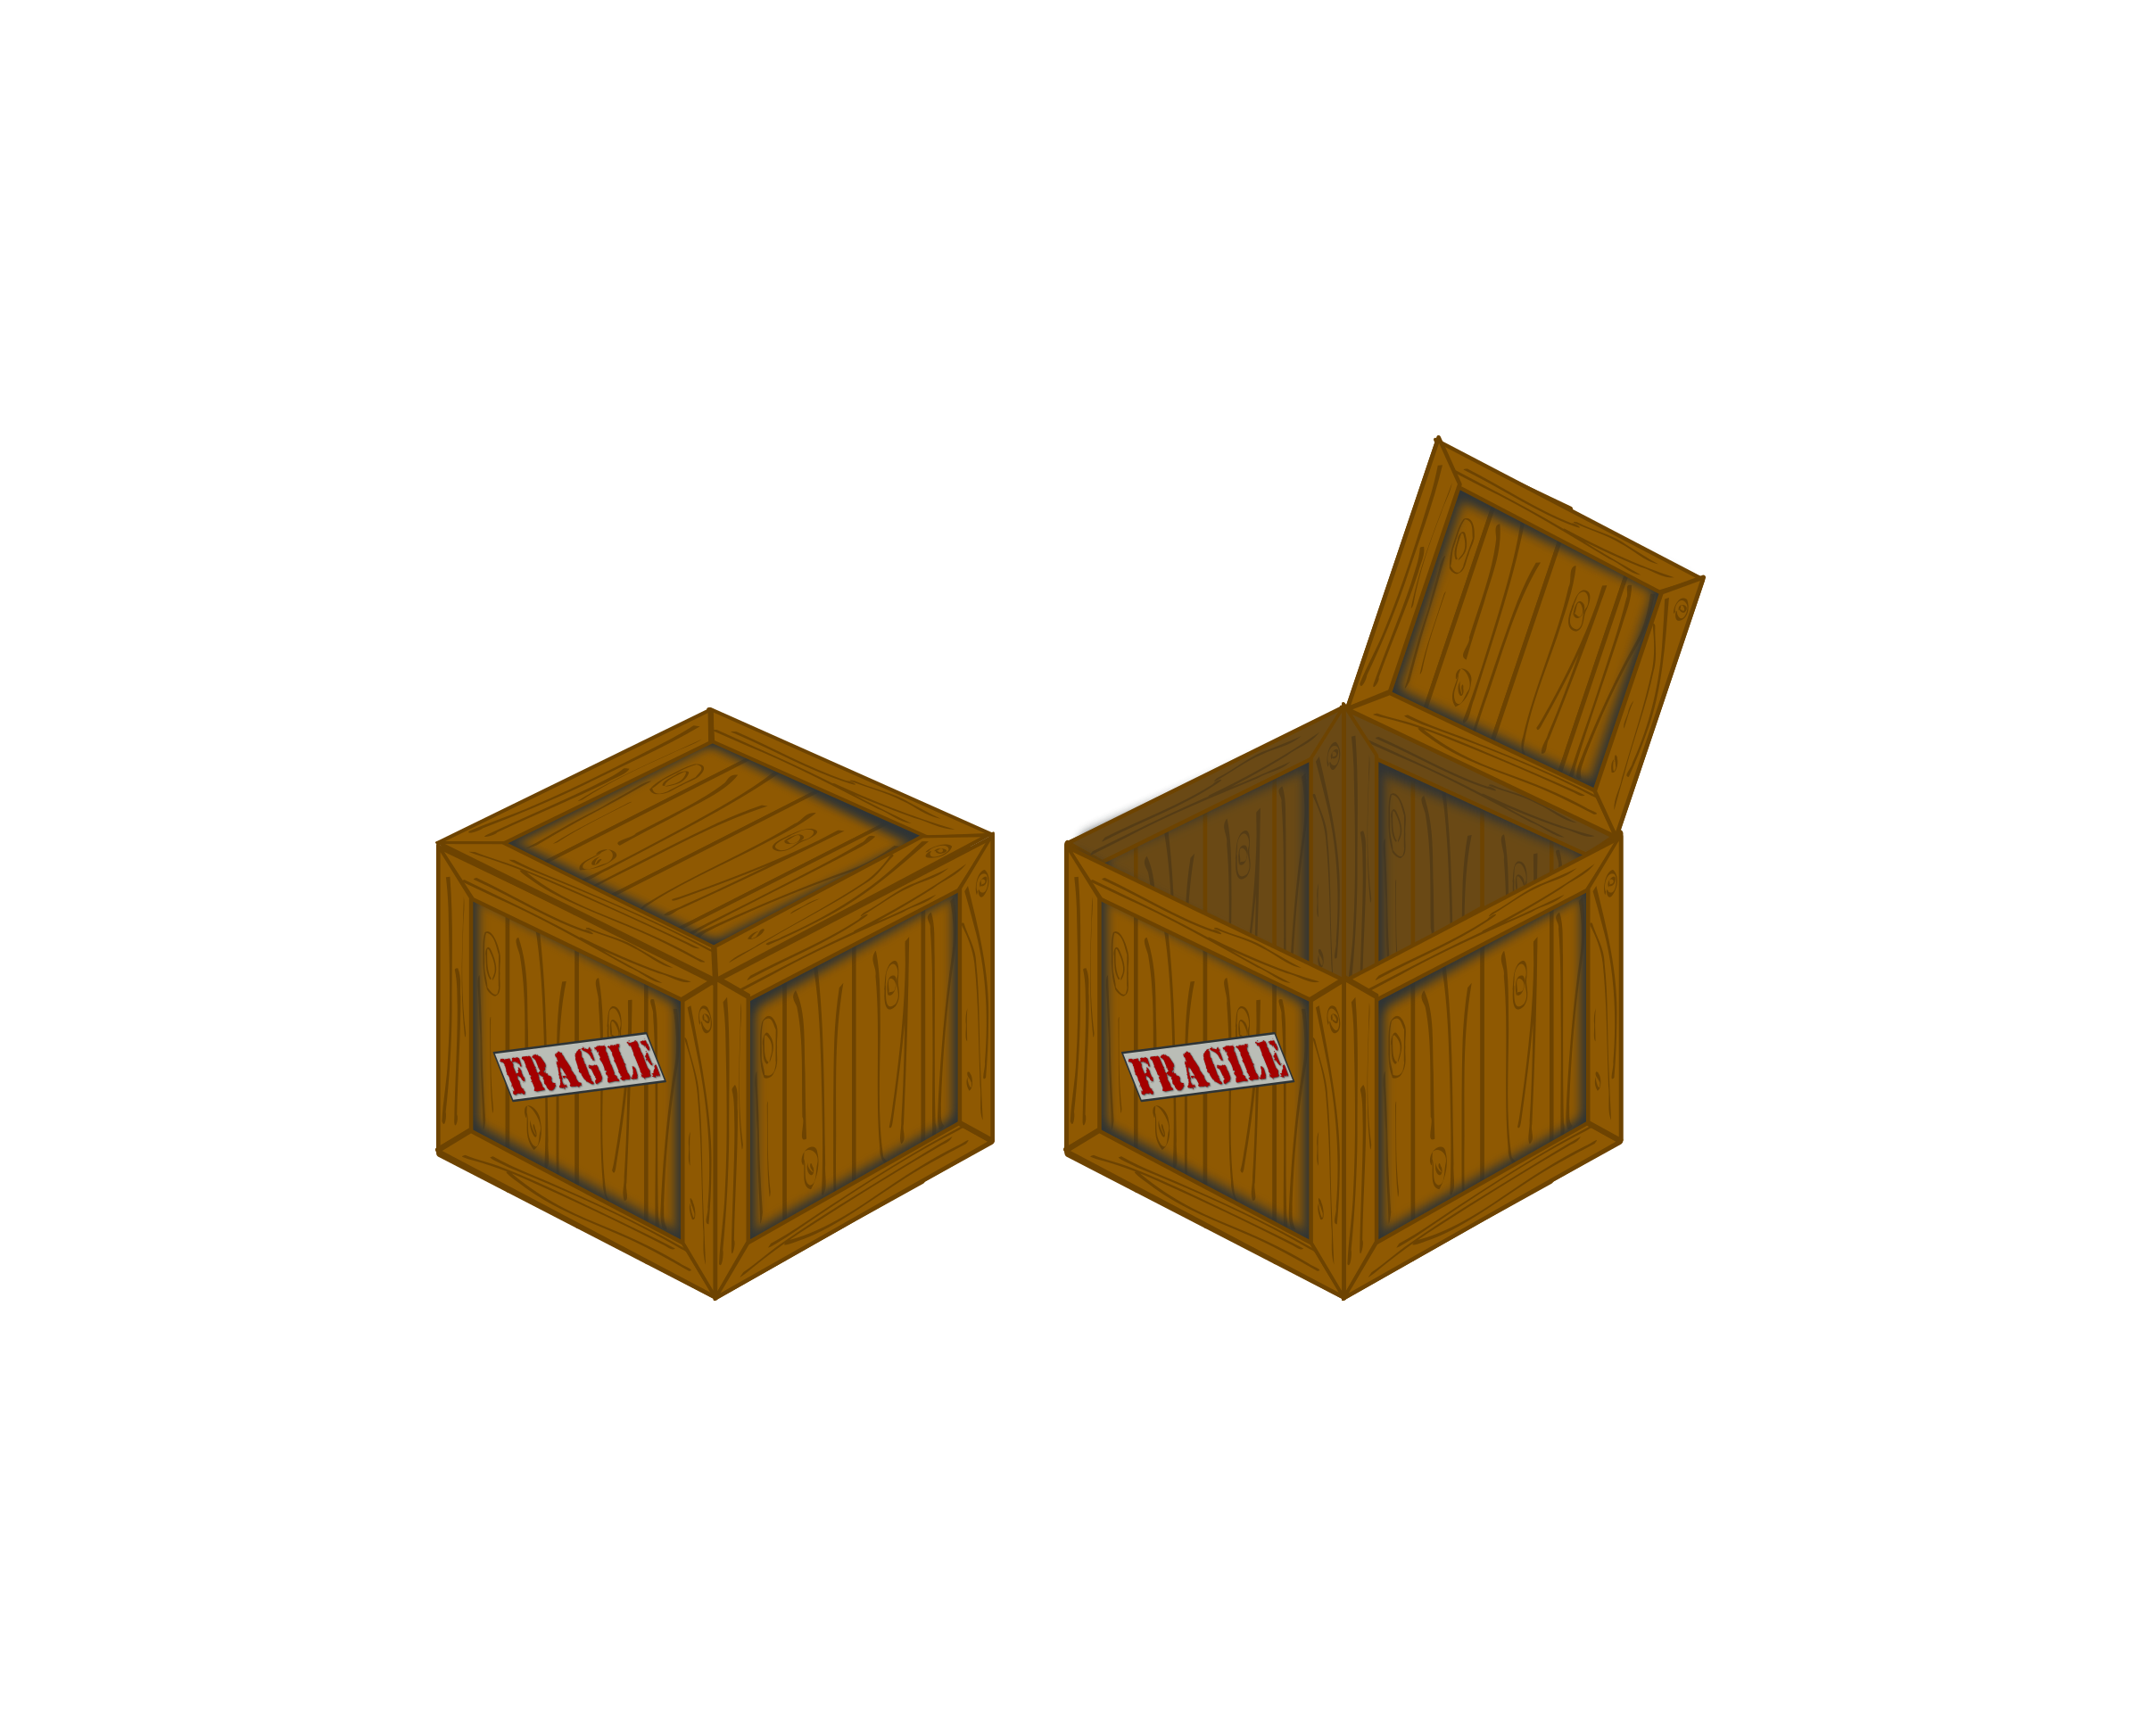 Closed and open perspective crate by snifty